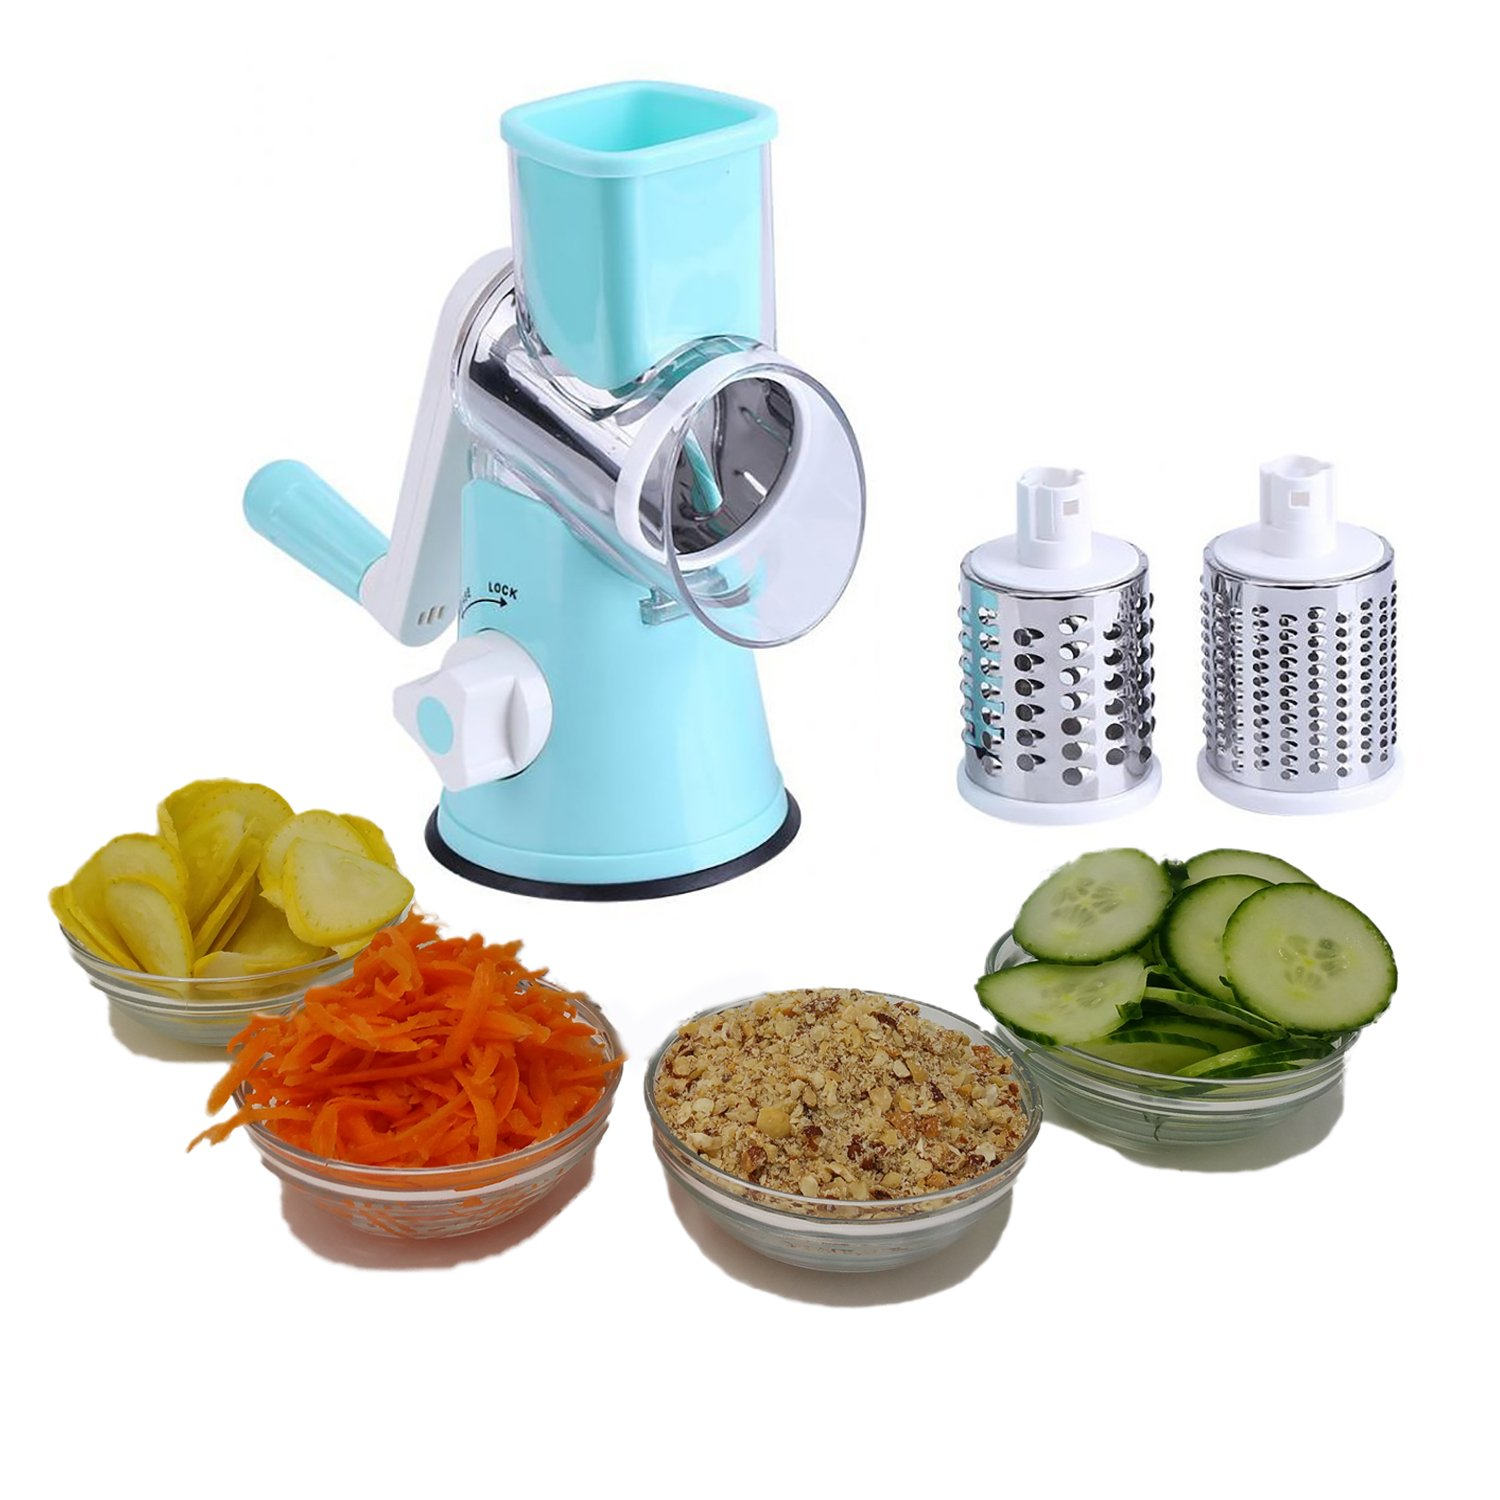 Amazon.com: Vegetable Chopper and Cheese Grater By Famco Fitness ...